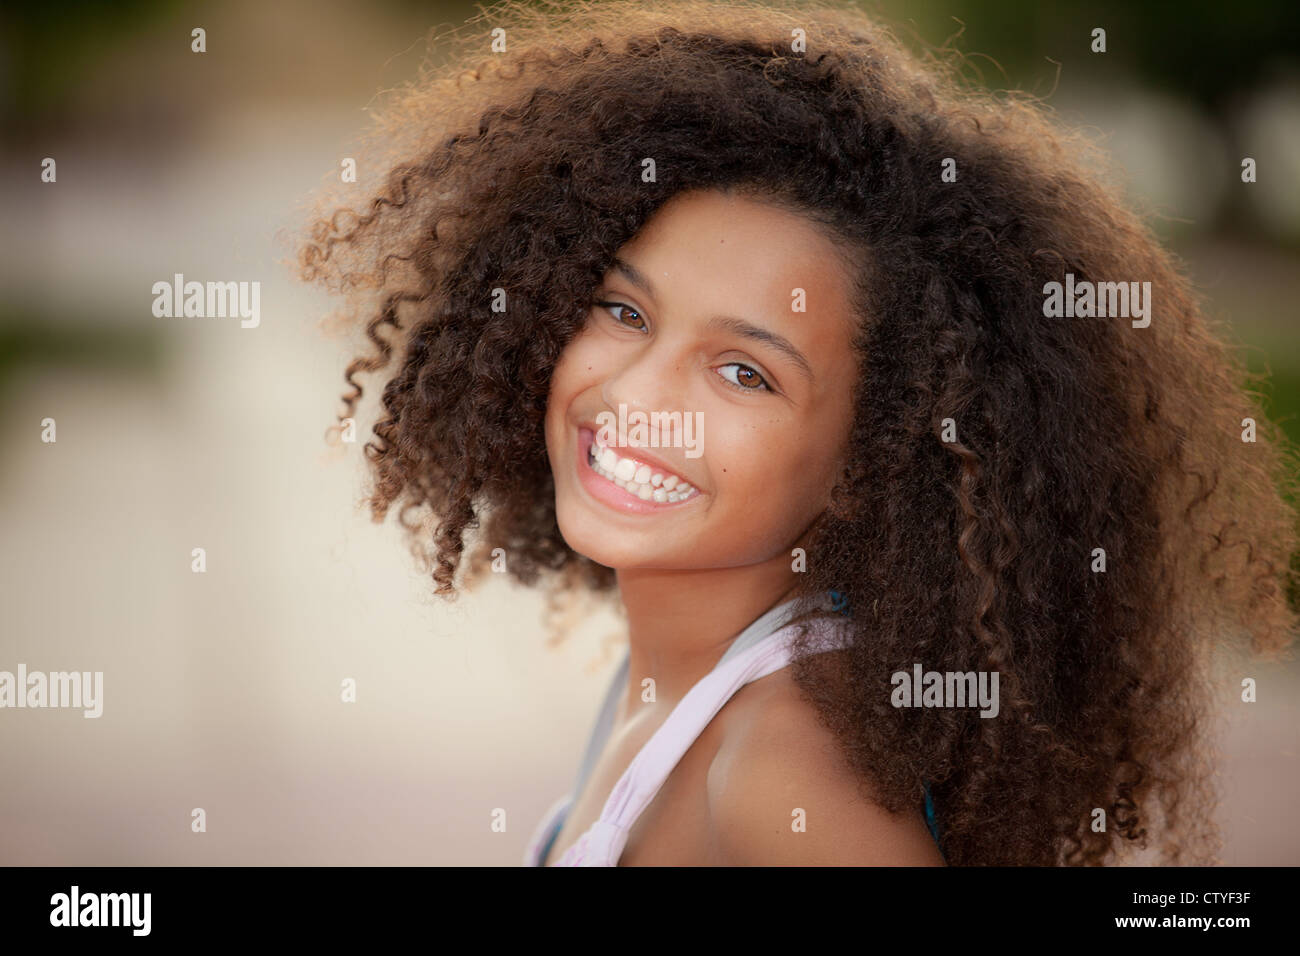 happy smiling african descent child with afro hair style - Stock Image